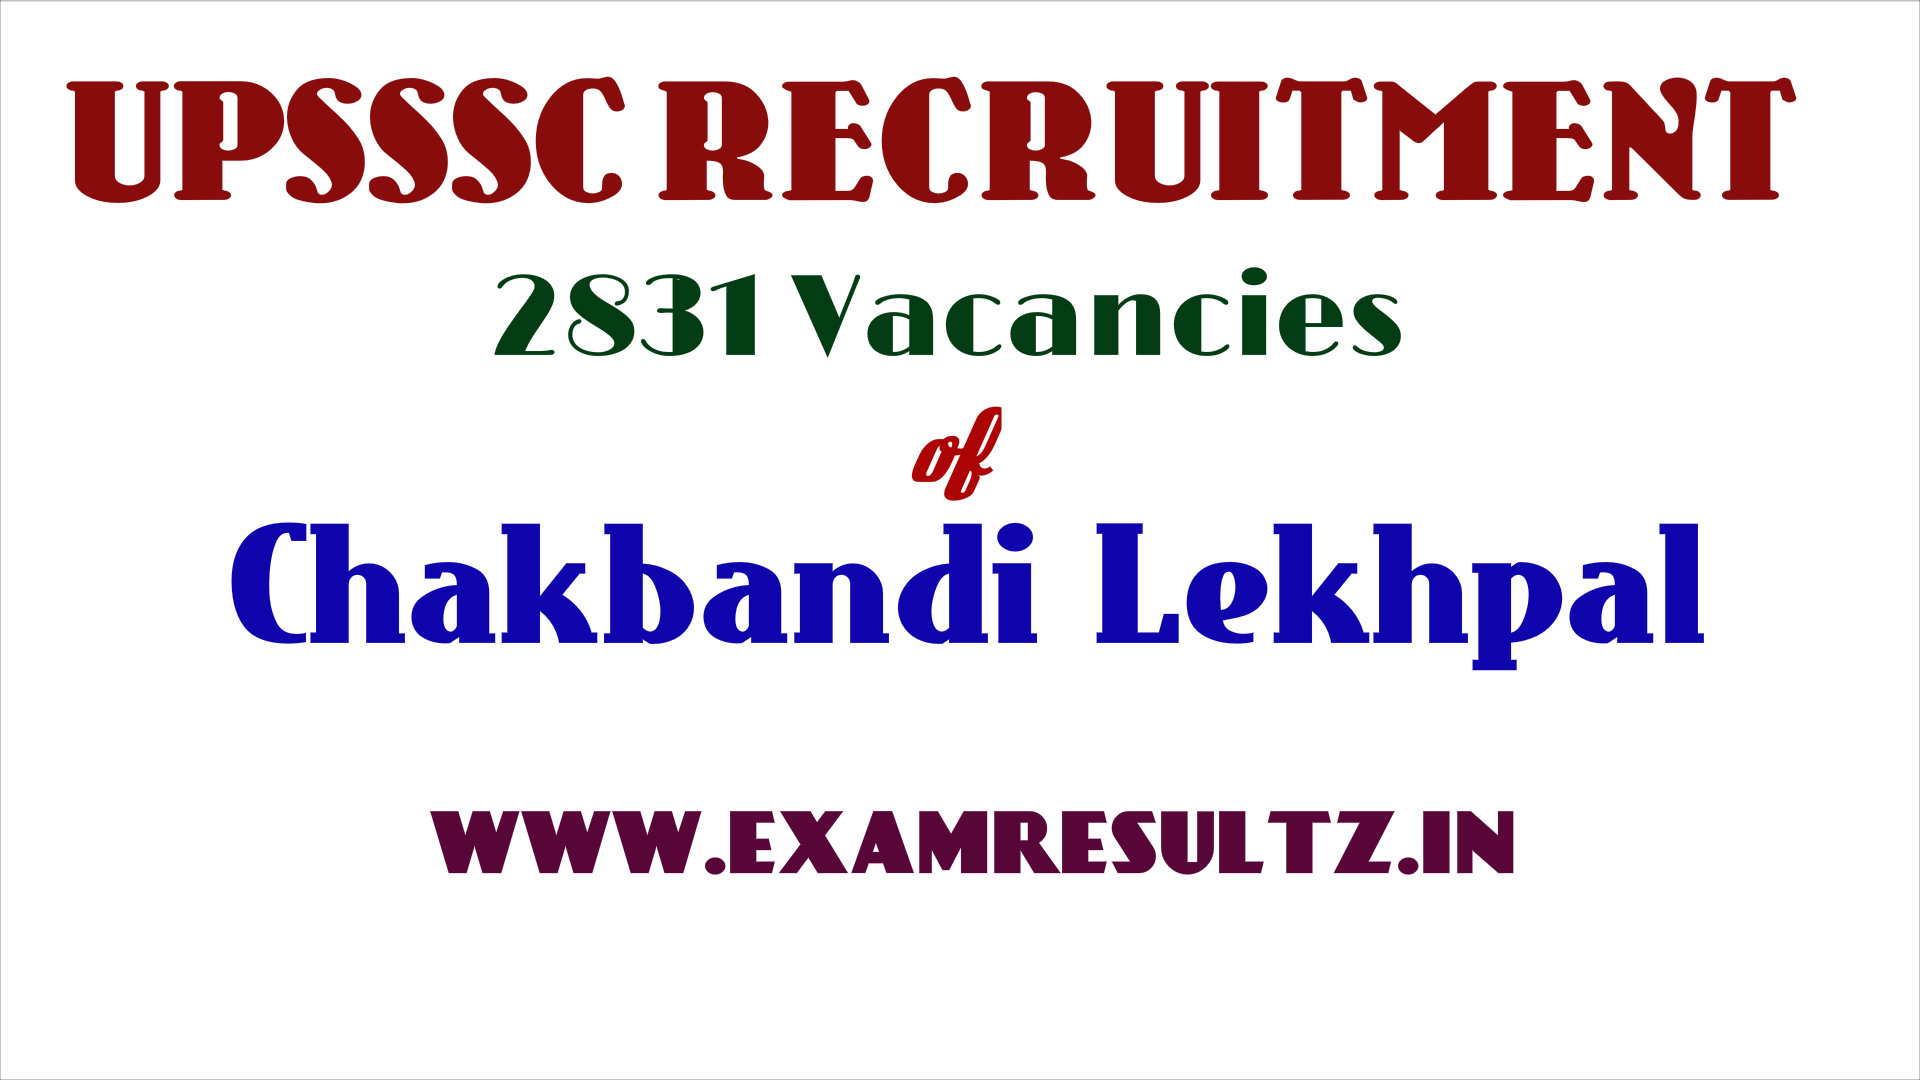 UPSSSC Chakbandi Lekhpal recruitment april 2015 online application on computer forms, loan forms, human resources forms, communication forms, online job applications, maintenance forms, online job search, baby forms, online job advertisements, finance forms, work forms, banking forms, online job training,